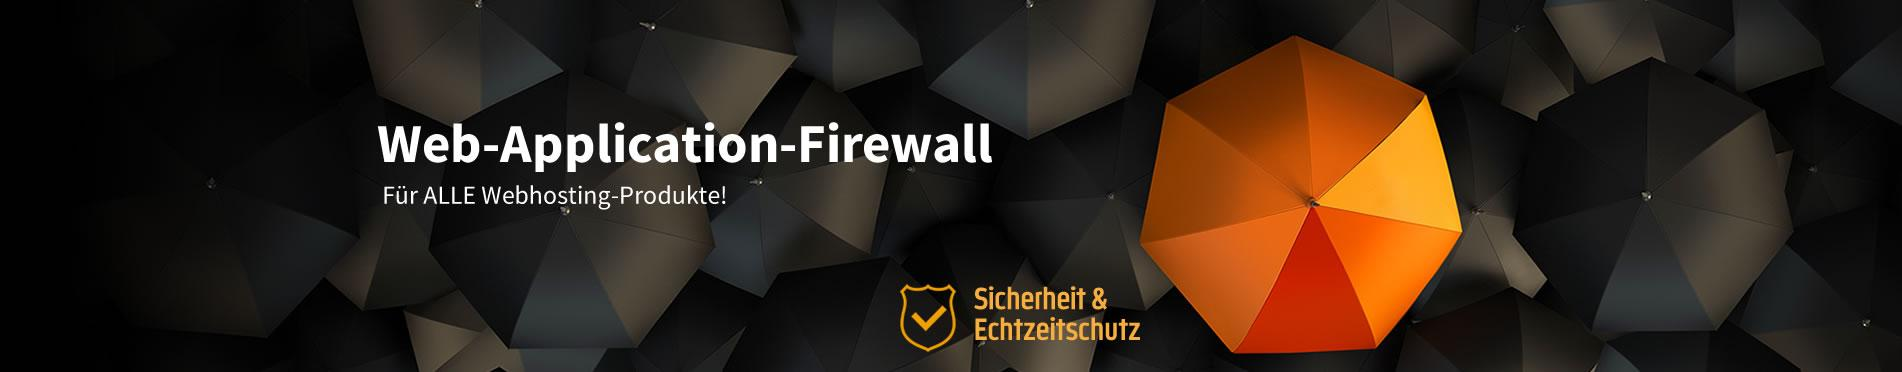 Web-Application-Firewall für ALLE Hosting-Produkte bei Webspace-Verkauf.de